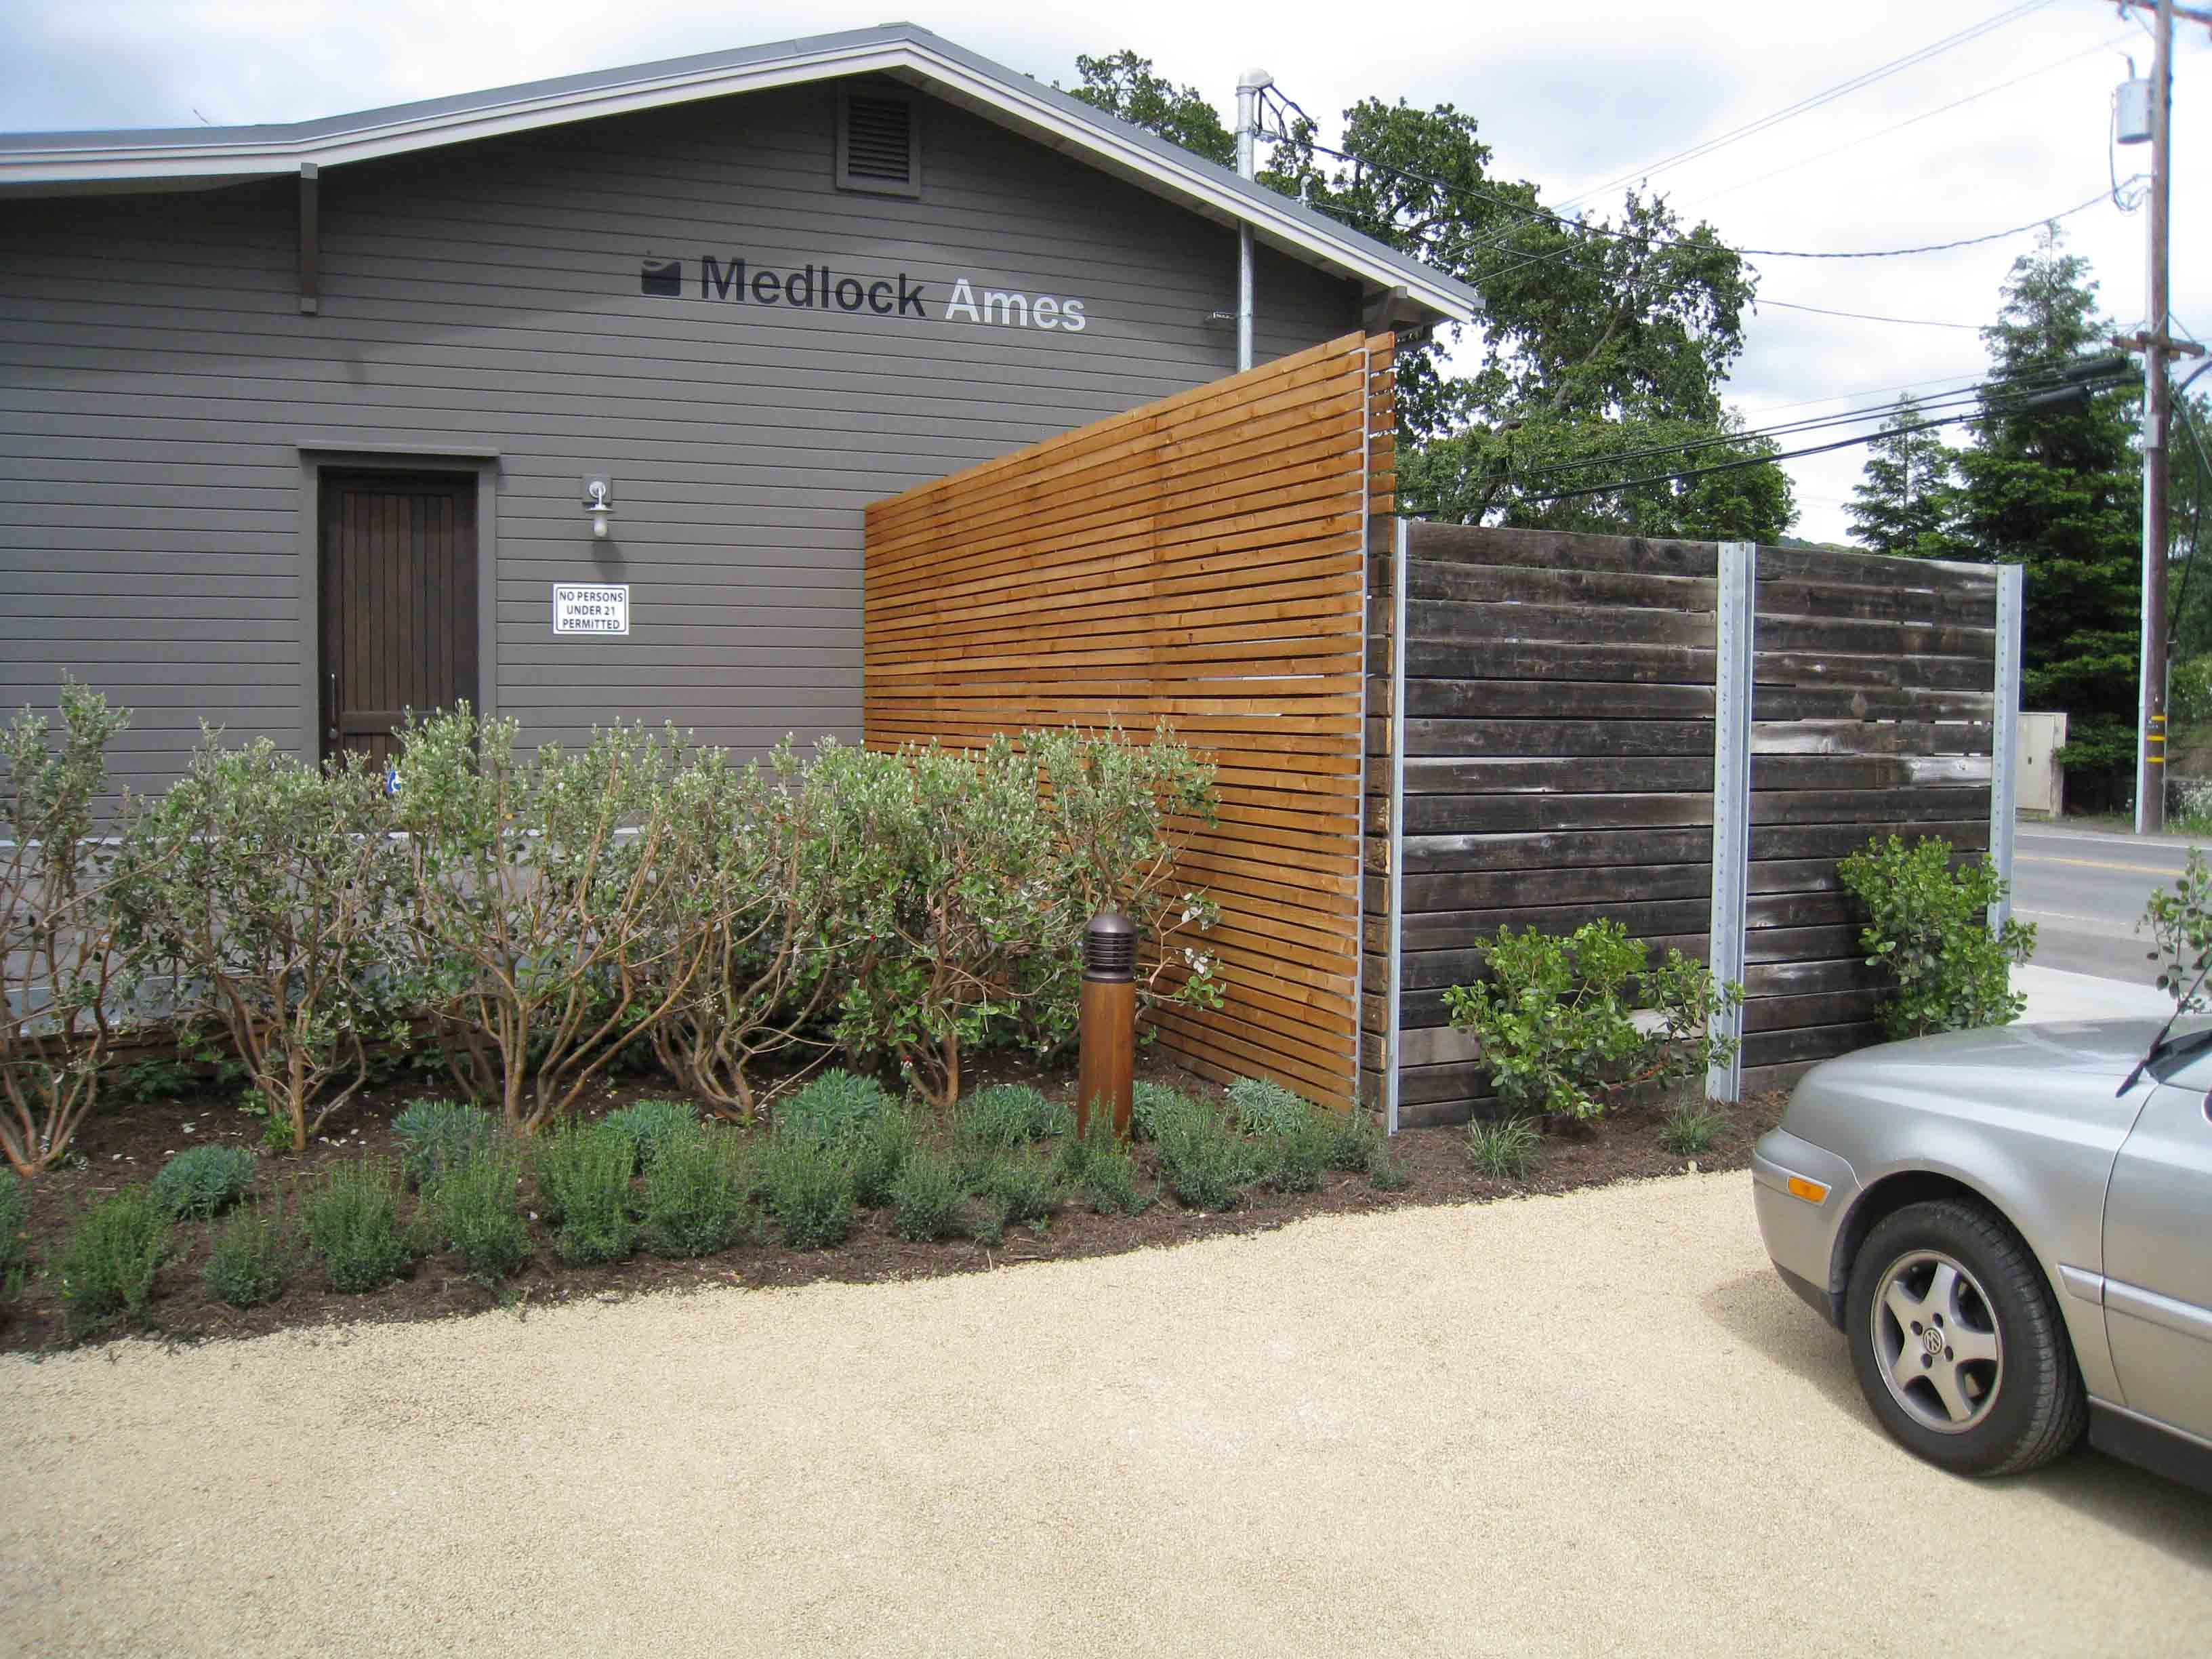 Fence And Screen I Designed At Medlock Ames Tasting Room Outdoor